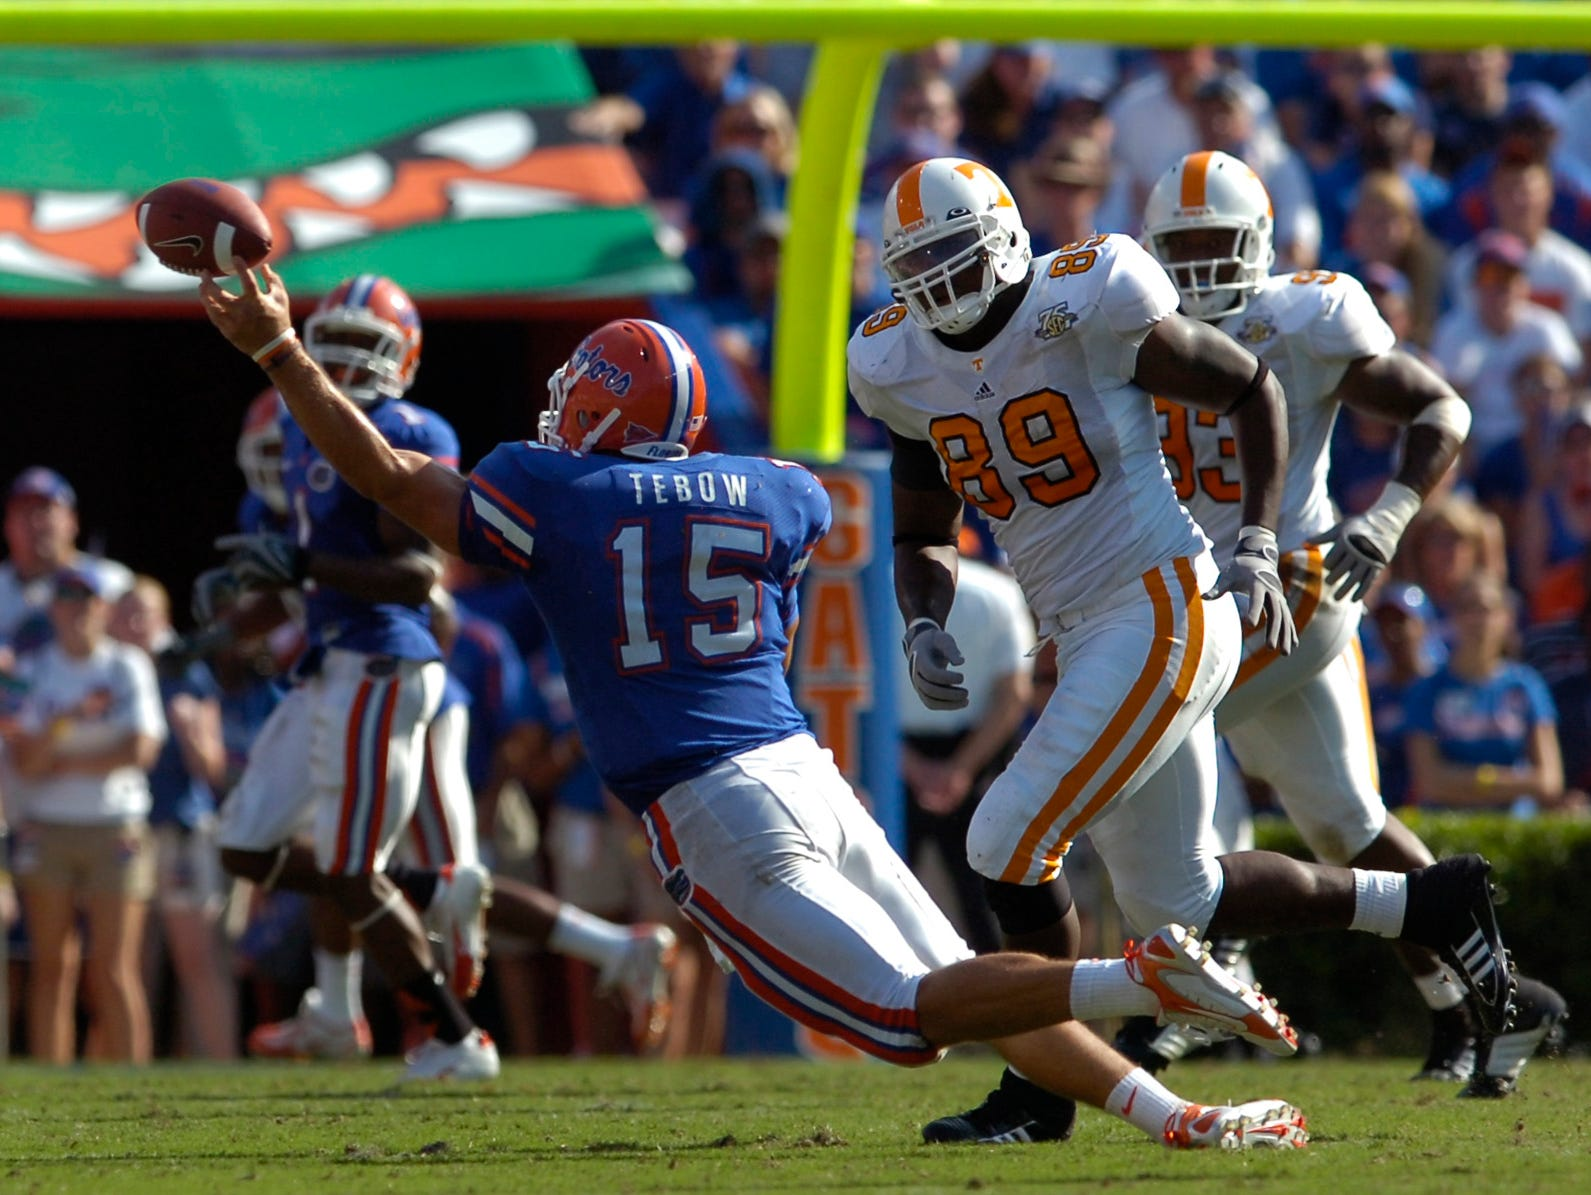 Florida quarterback Tim Tebow throws a complete pass under pressure from the Tennessee defense. Florida won the game 59-20.